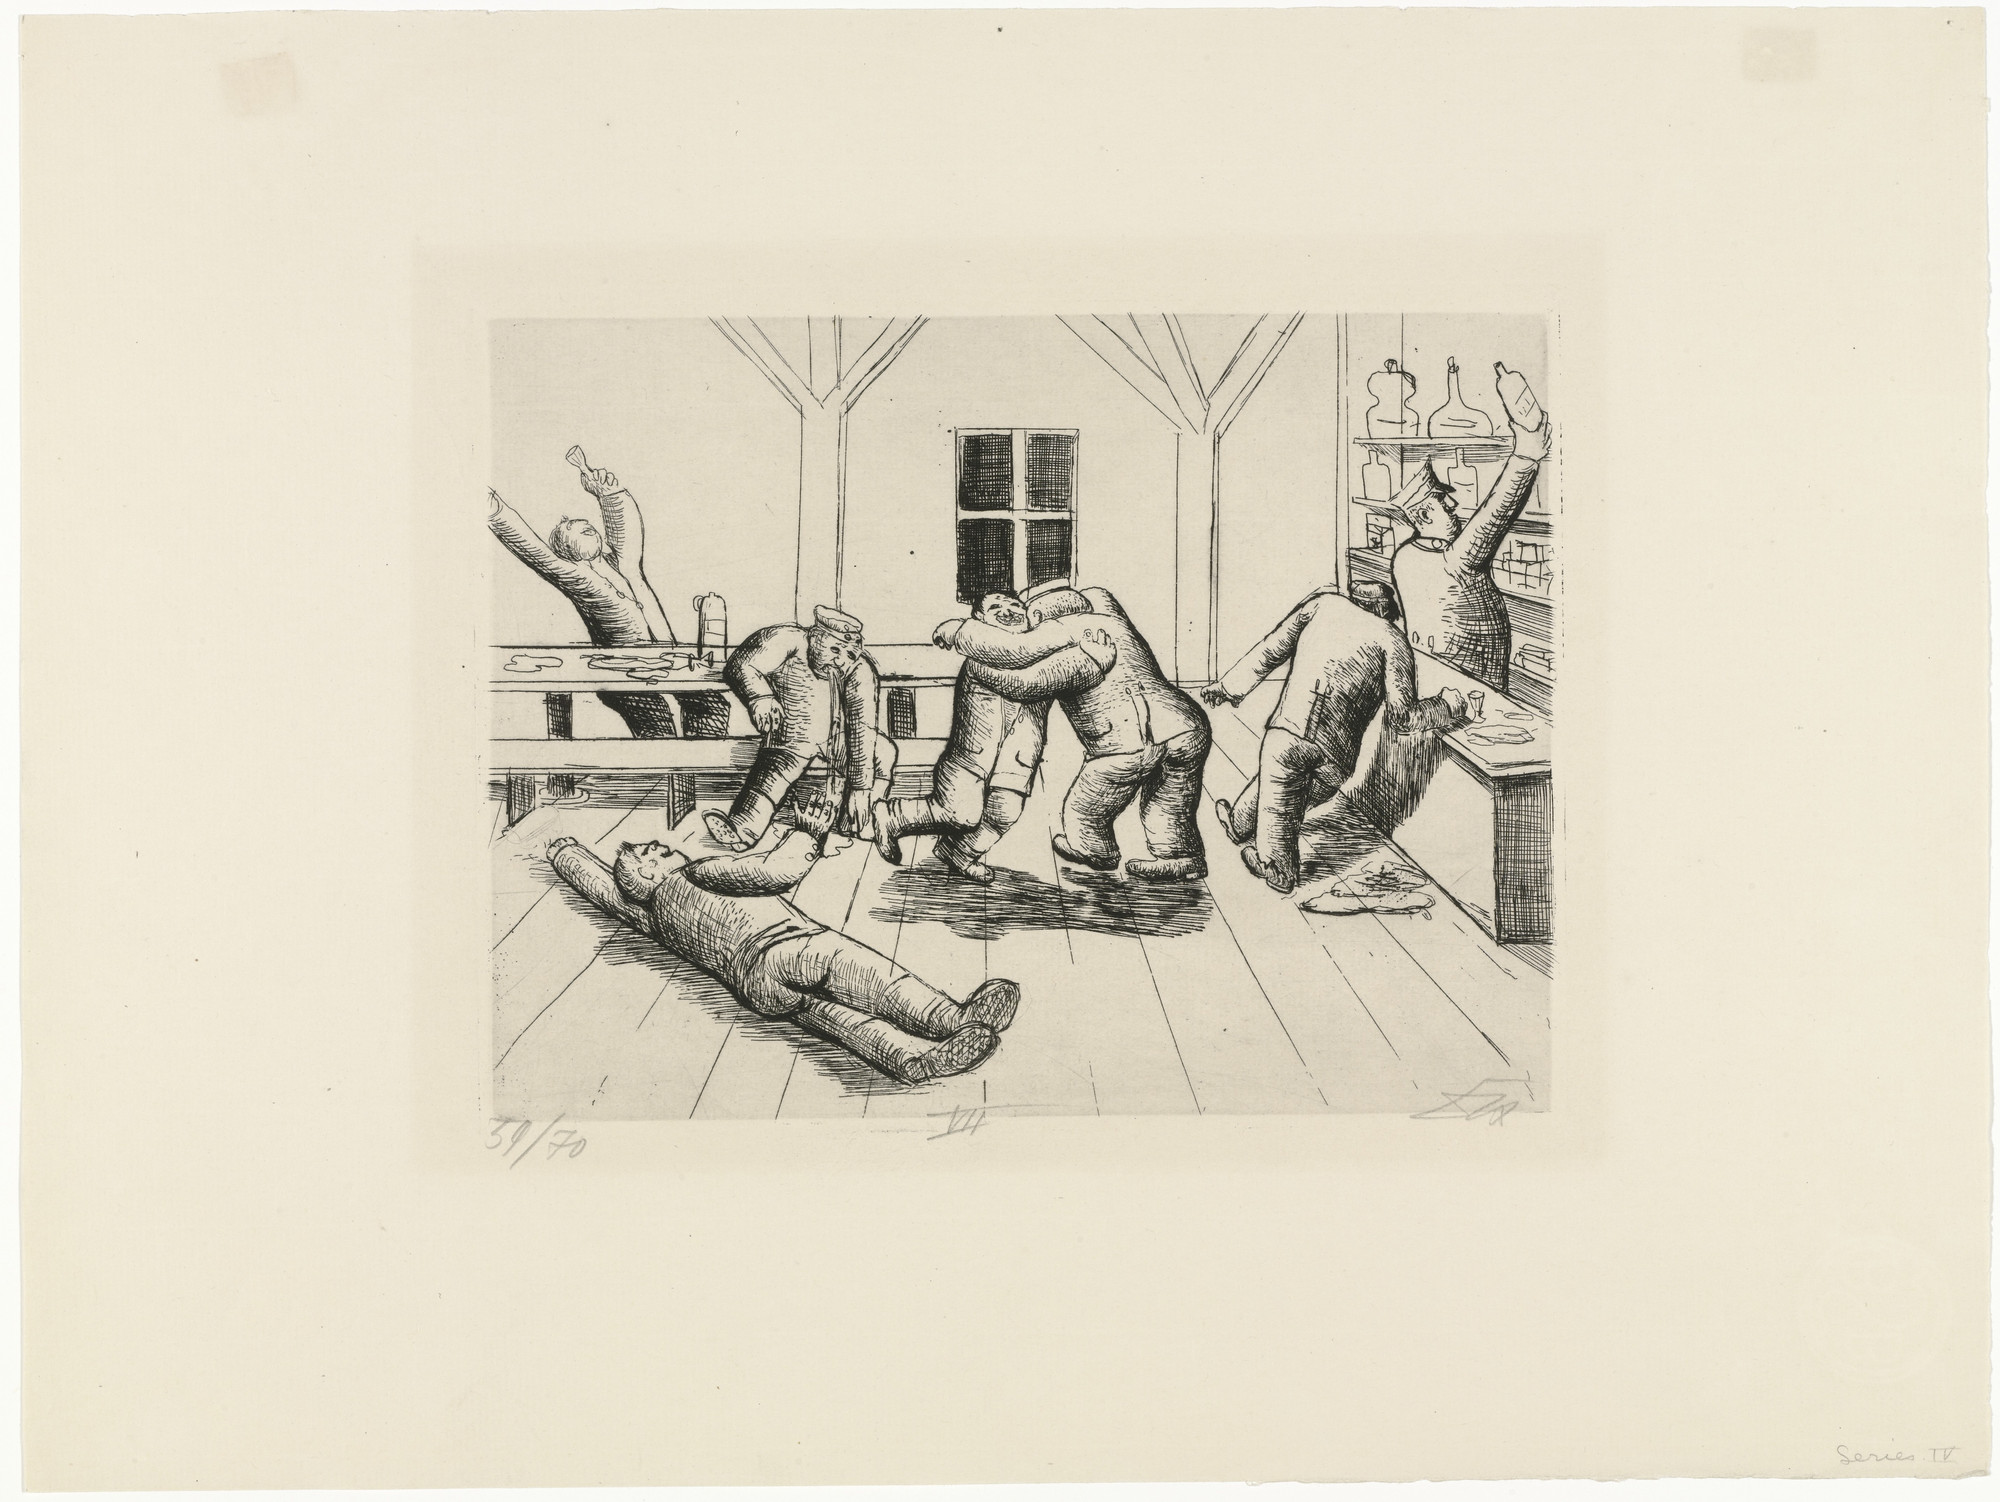 Otto Dix. Canteen in Haplincourt (Kantine in Haplincourt) from The War (Der Krieg). (1924)